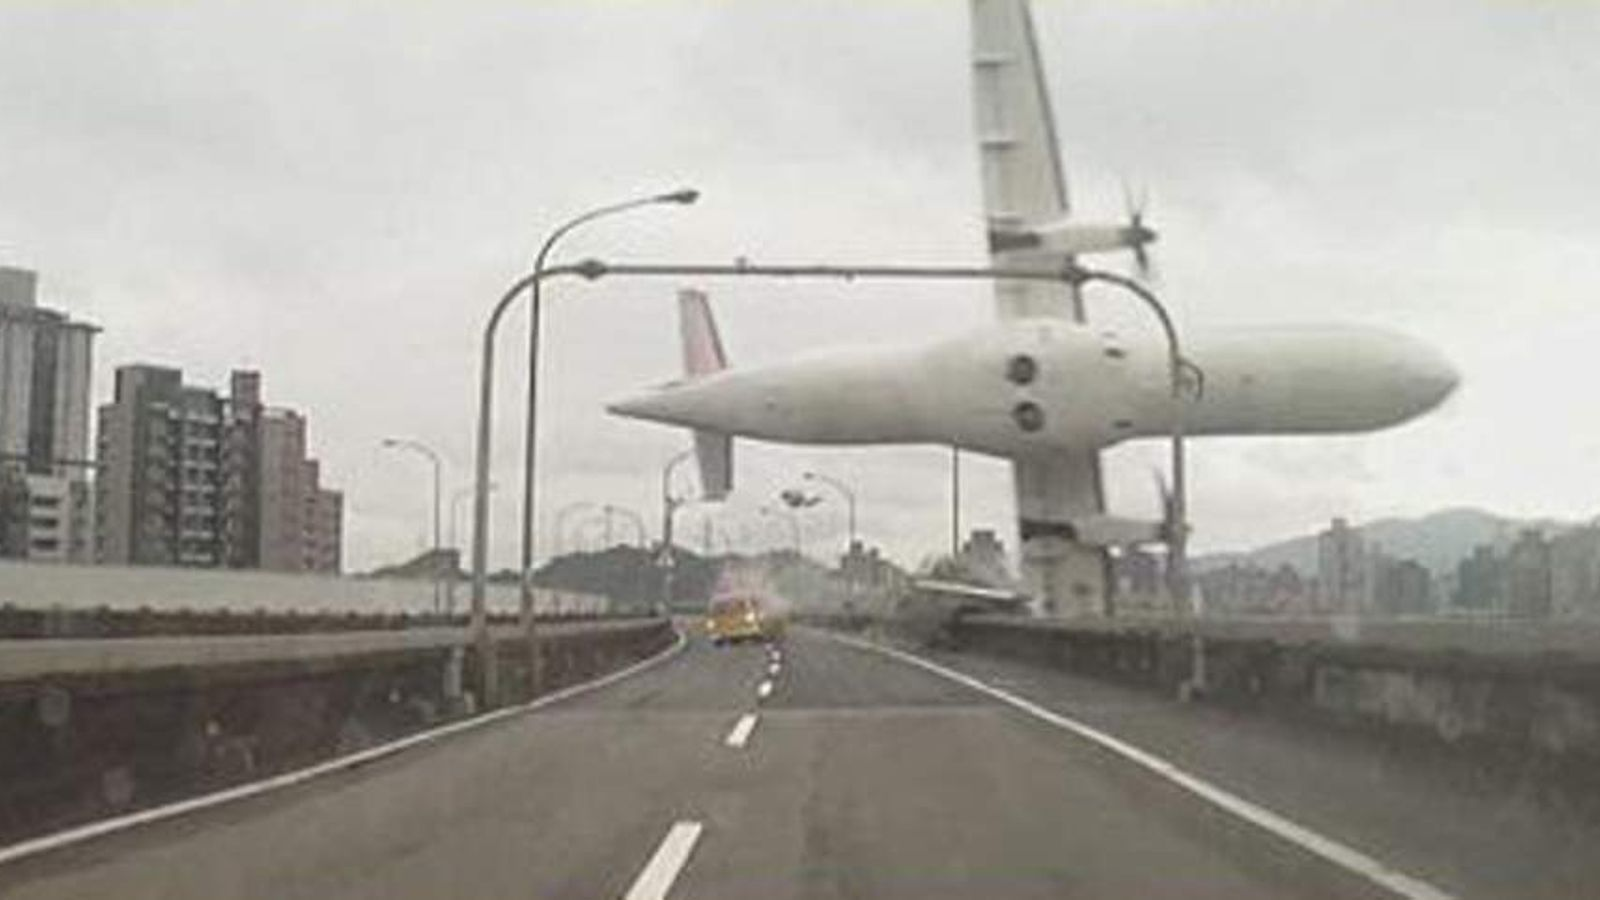 Taiwan Plane Crash Images On Taipei Bridge